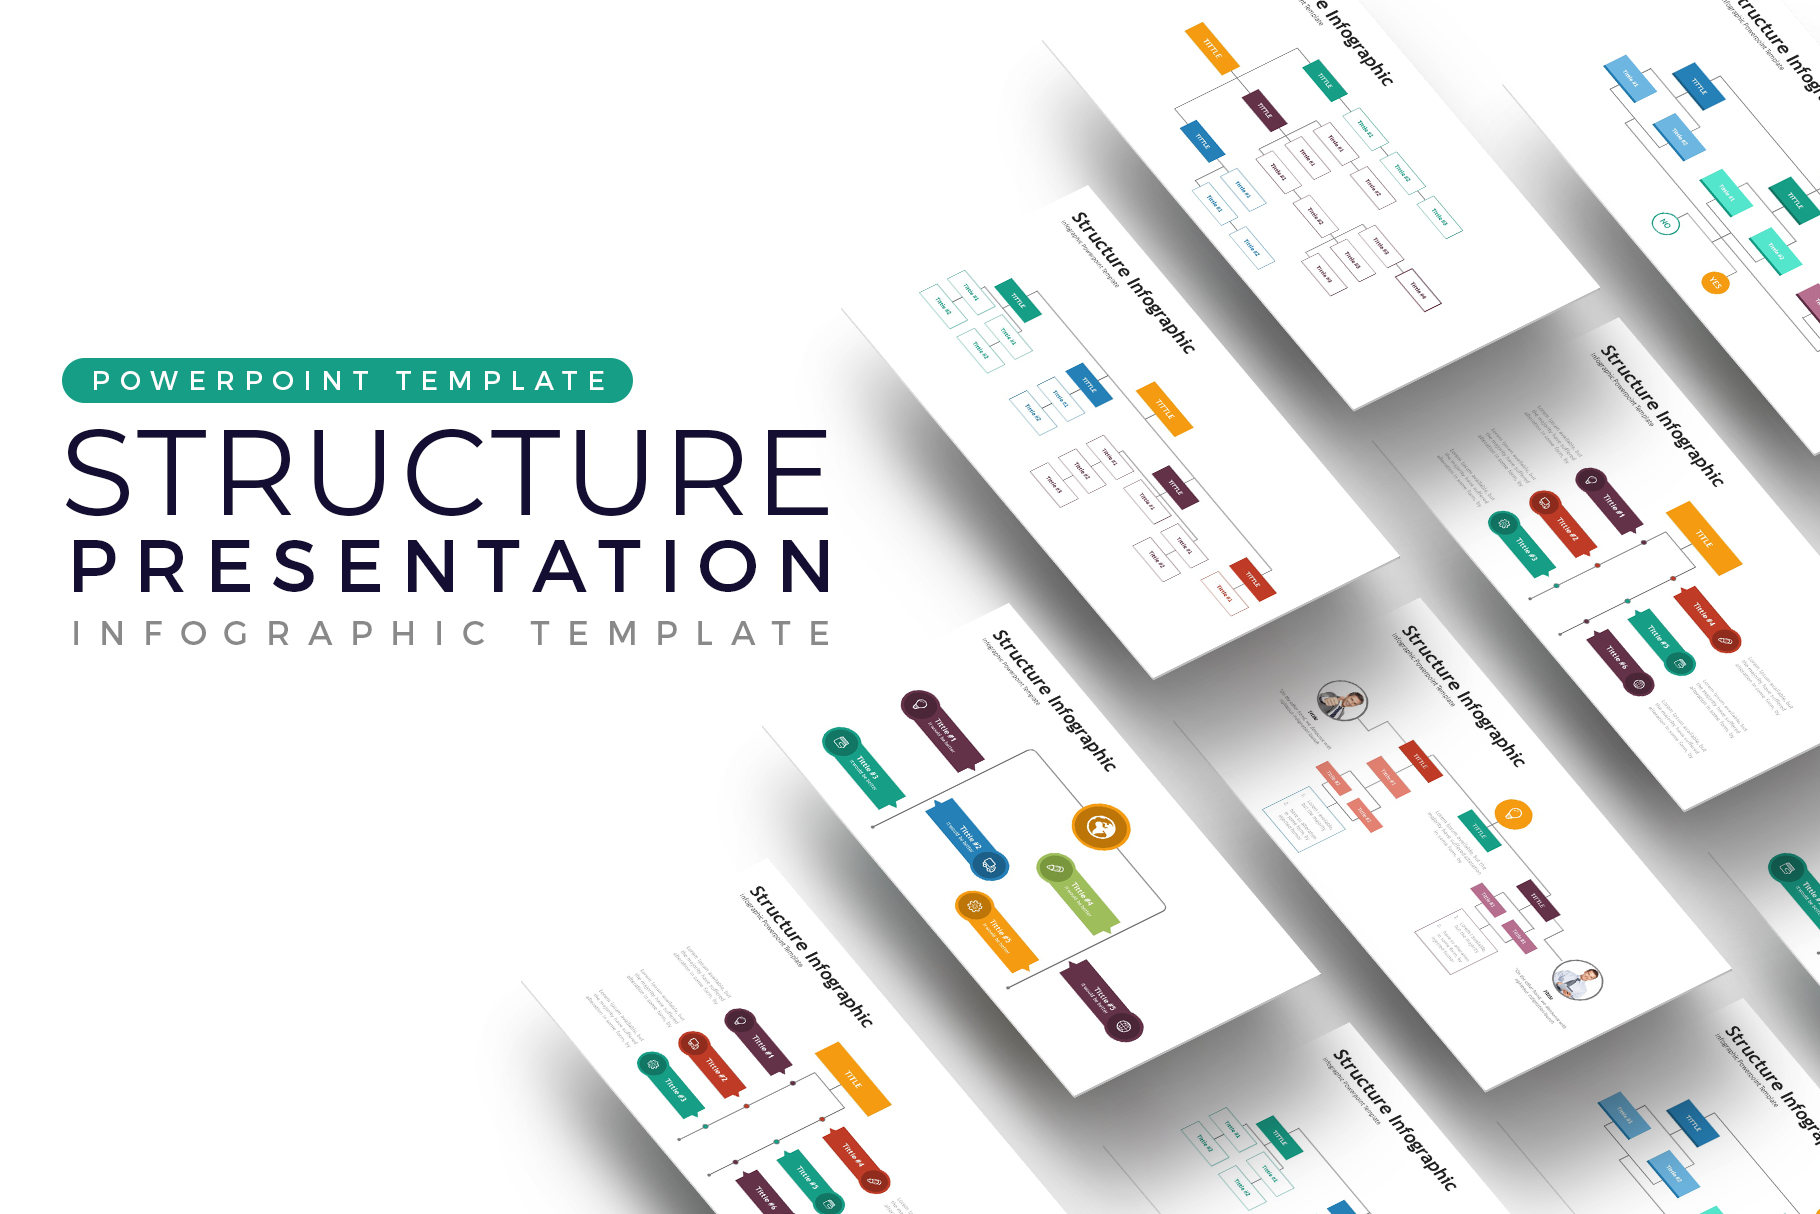 Structure Presentation - Infographic Template example image 1